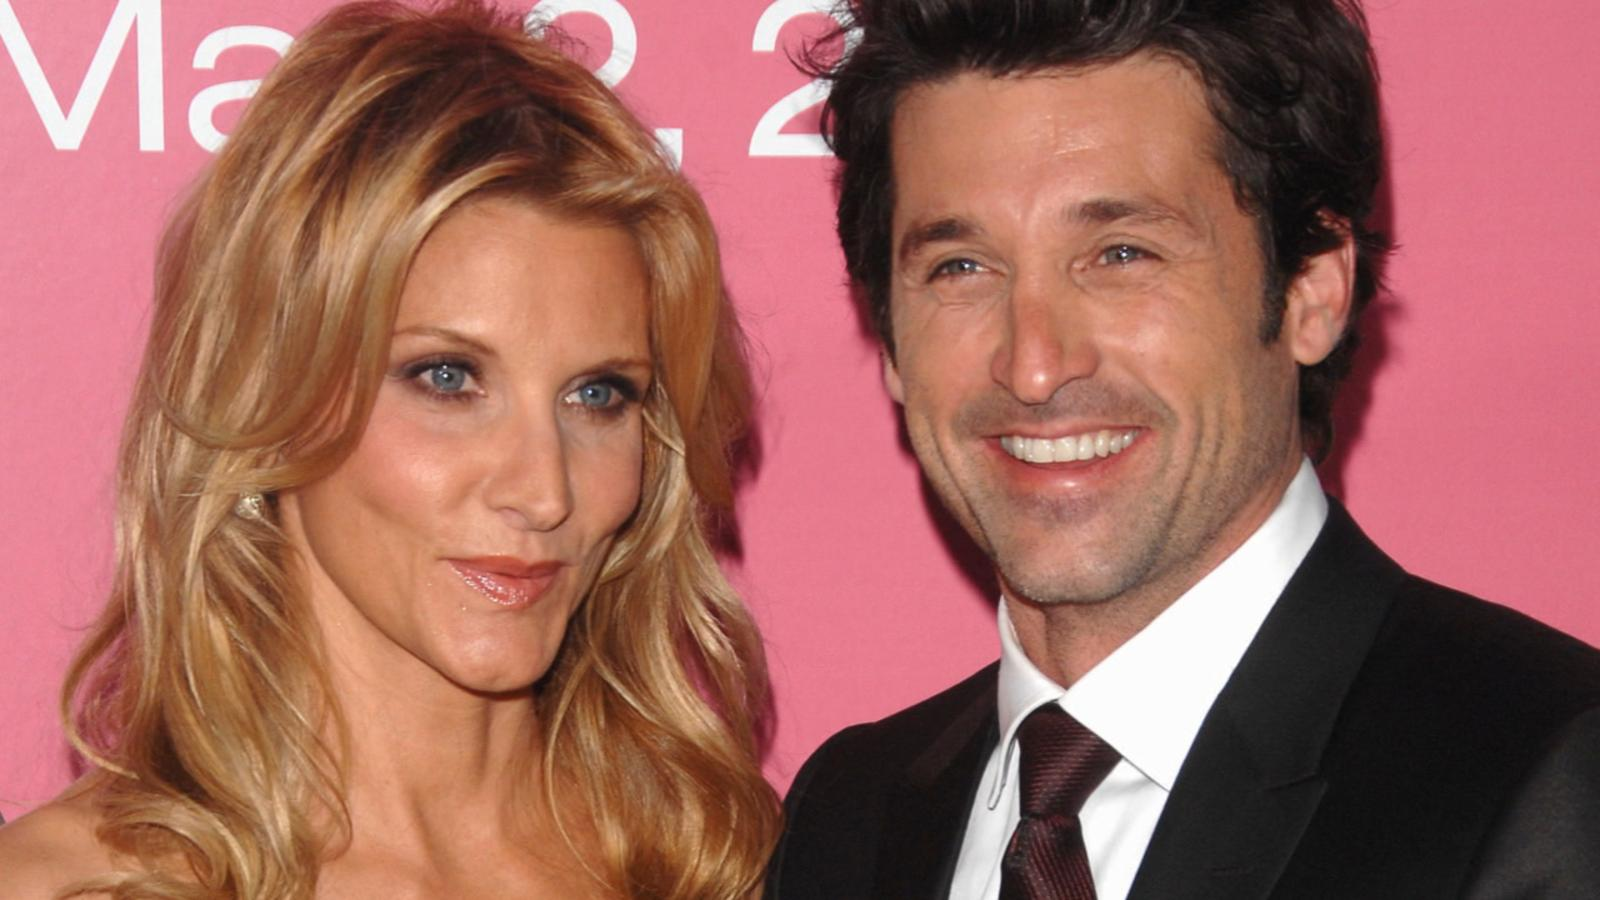 Patrick Dempsey Videos at ABC News Video Archive at abcnews com